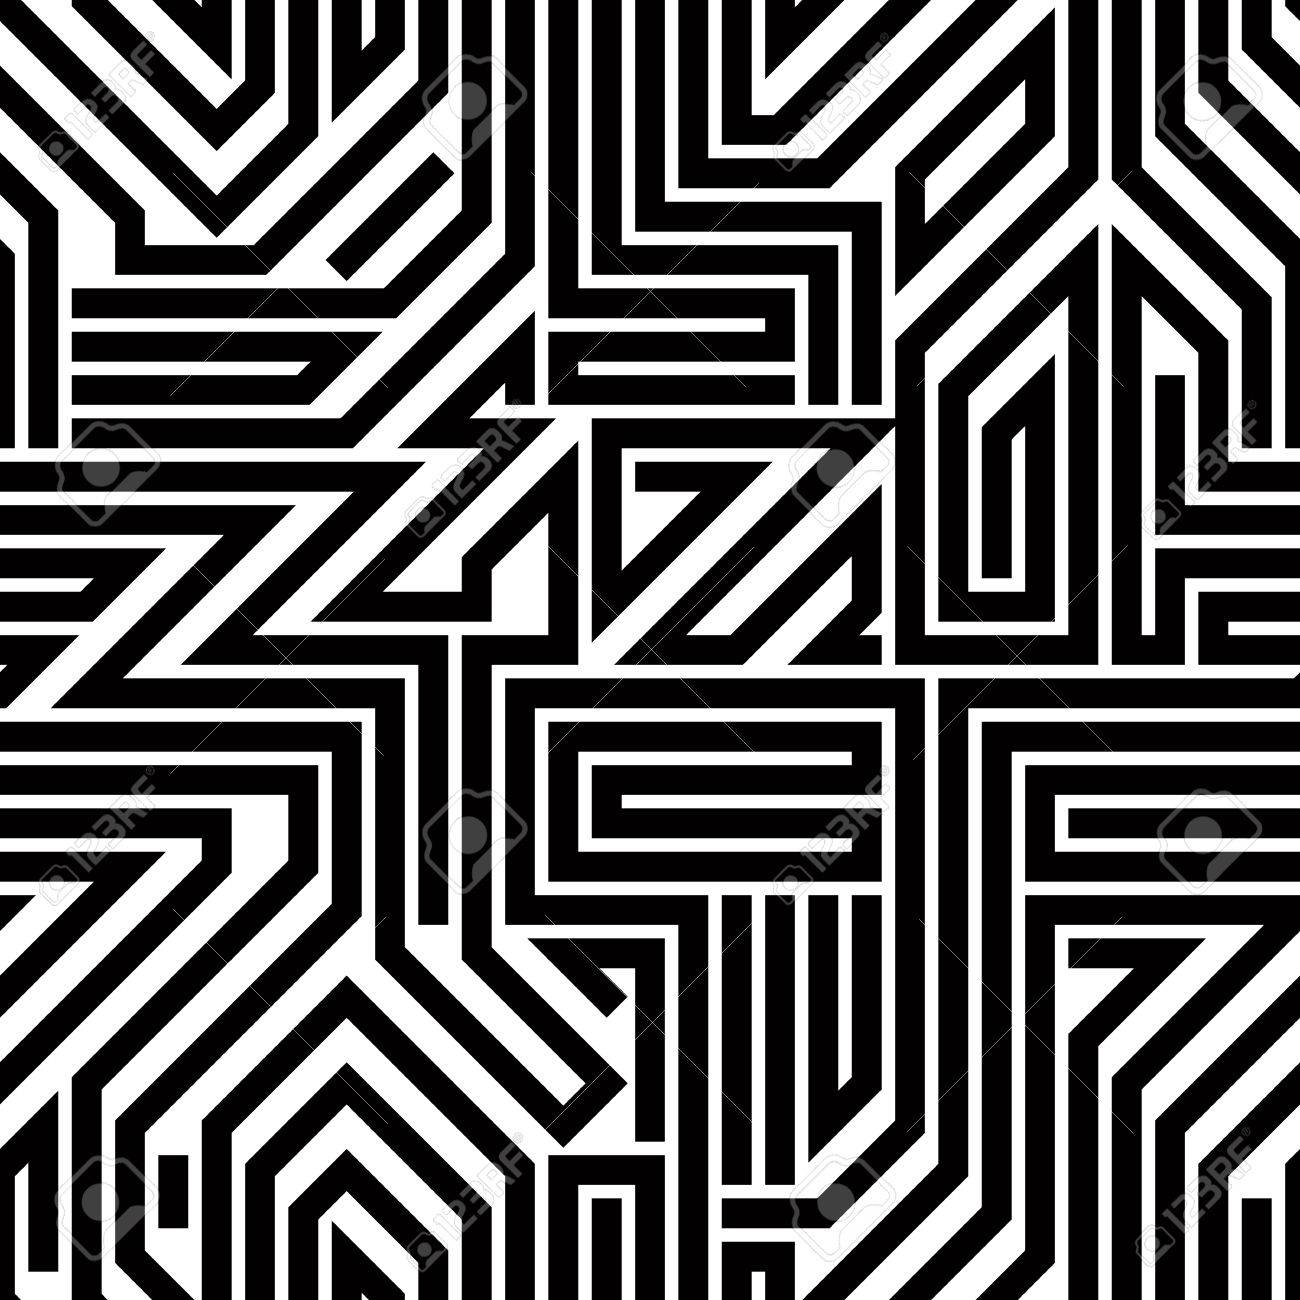 abstract circuit board black and white seamless pattern geometric